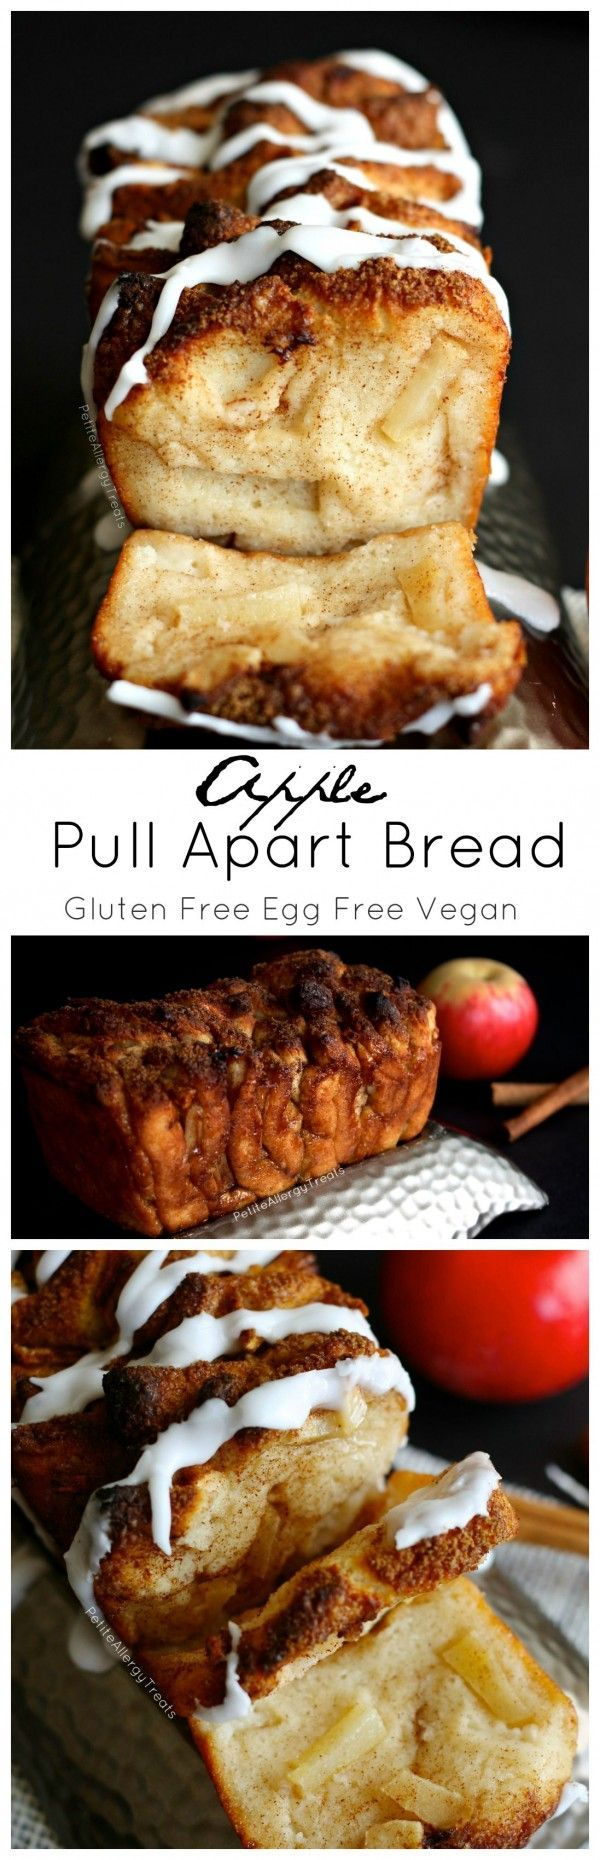 Apple Pull Apart Bread (Gluten Free Vegan) - Petite Allergy Treats #glutenfreebreakfasts